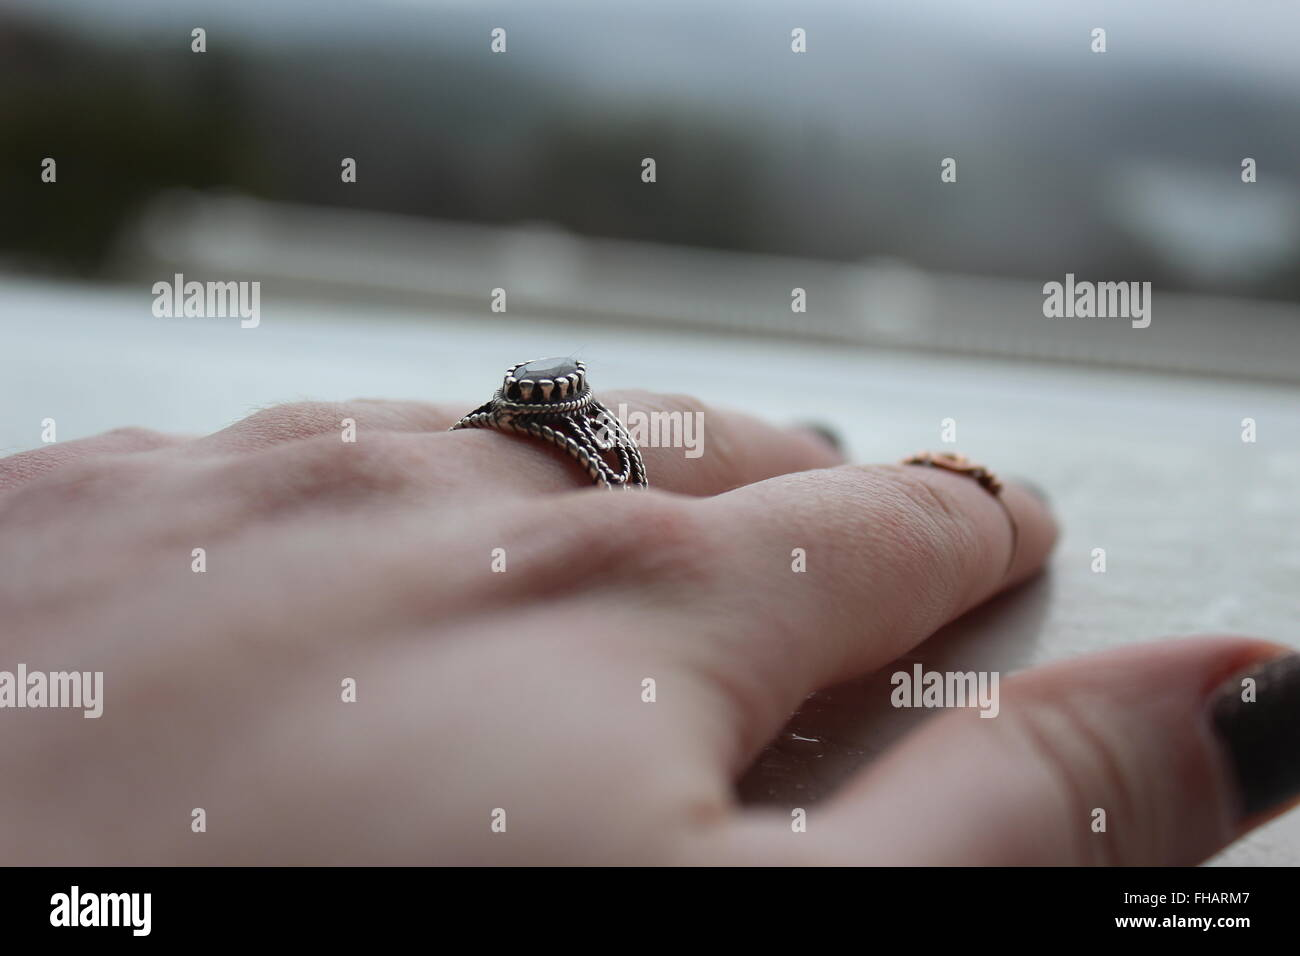 Rings - Stock Image